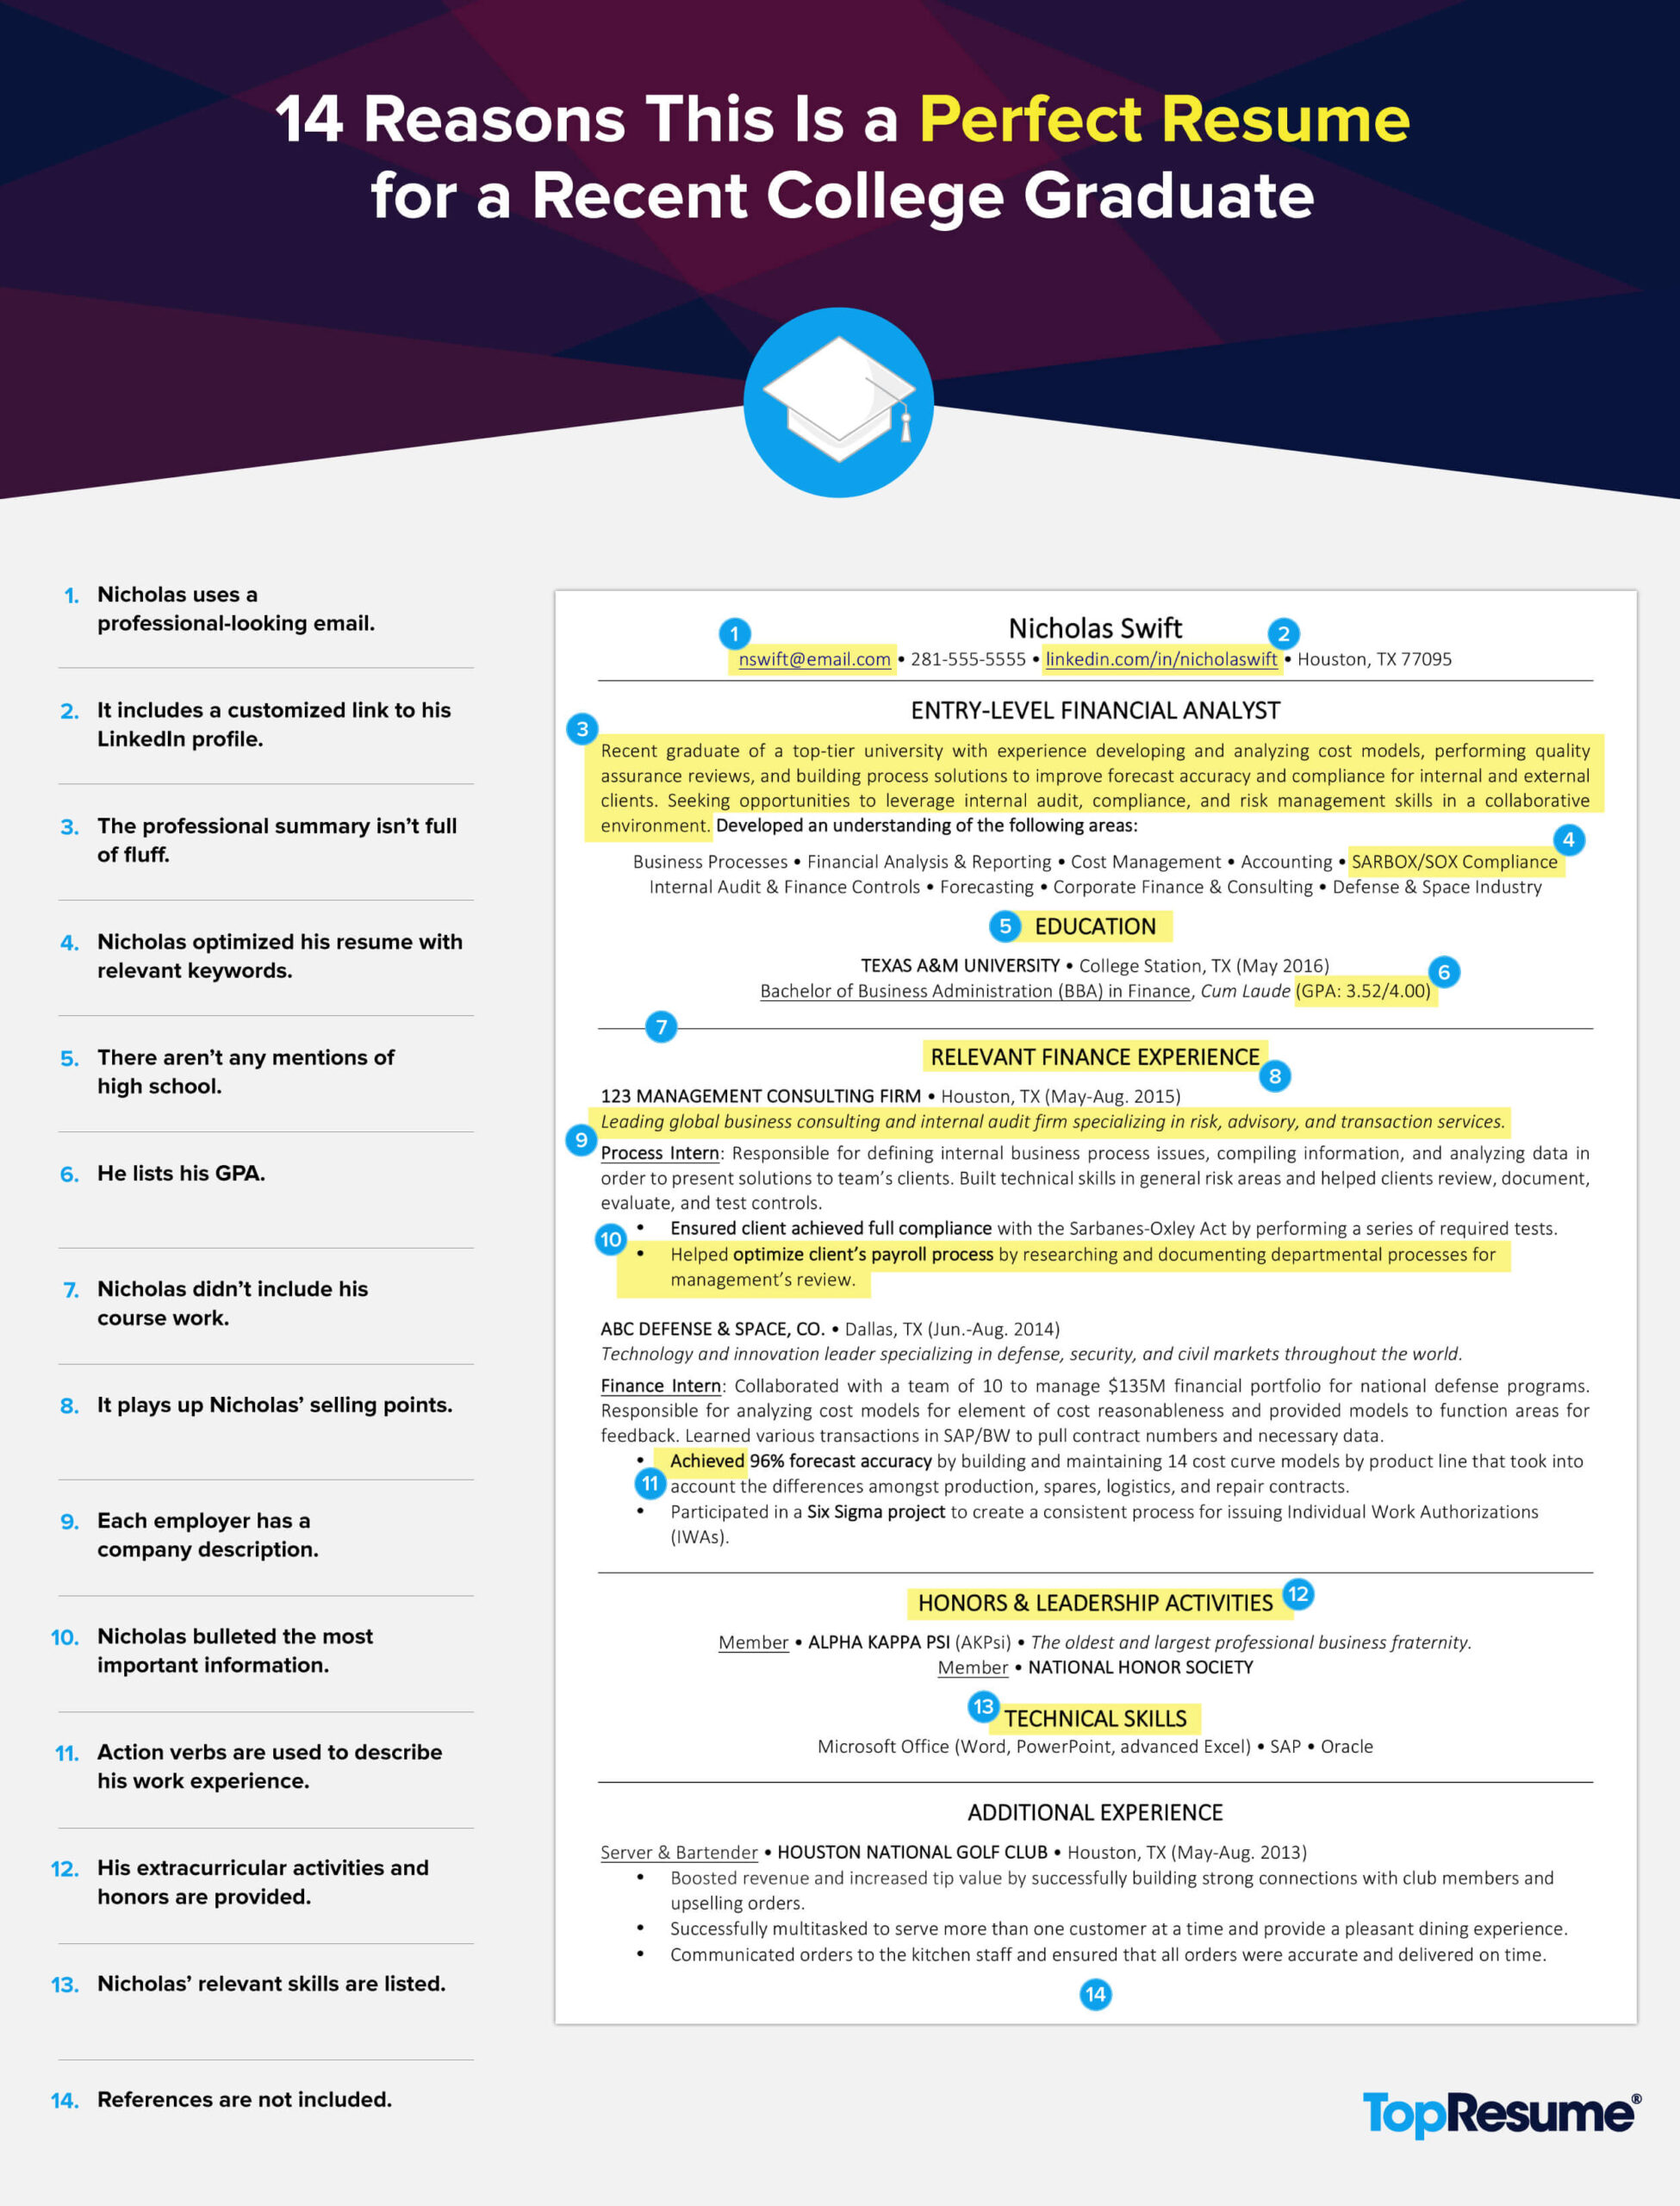 reasons this is perfect recent college graduate resume topresume 160516graduate Resume College Graduate Resume